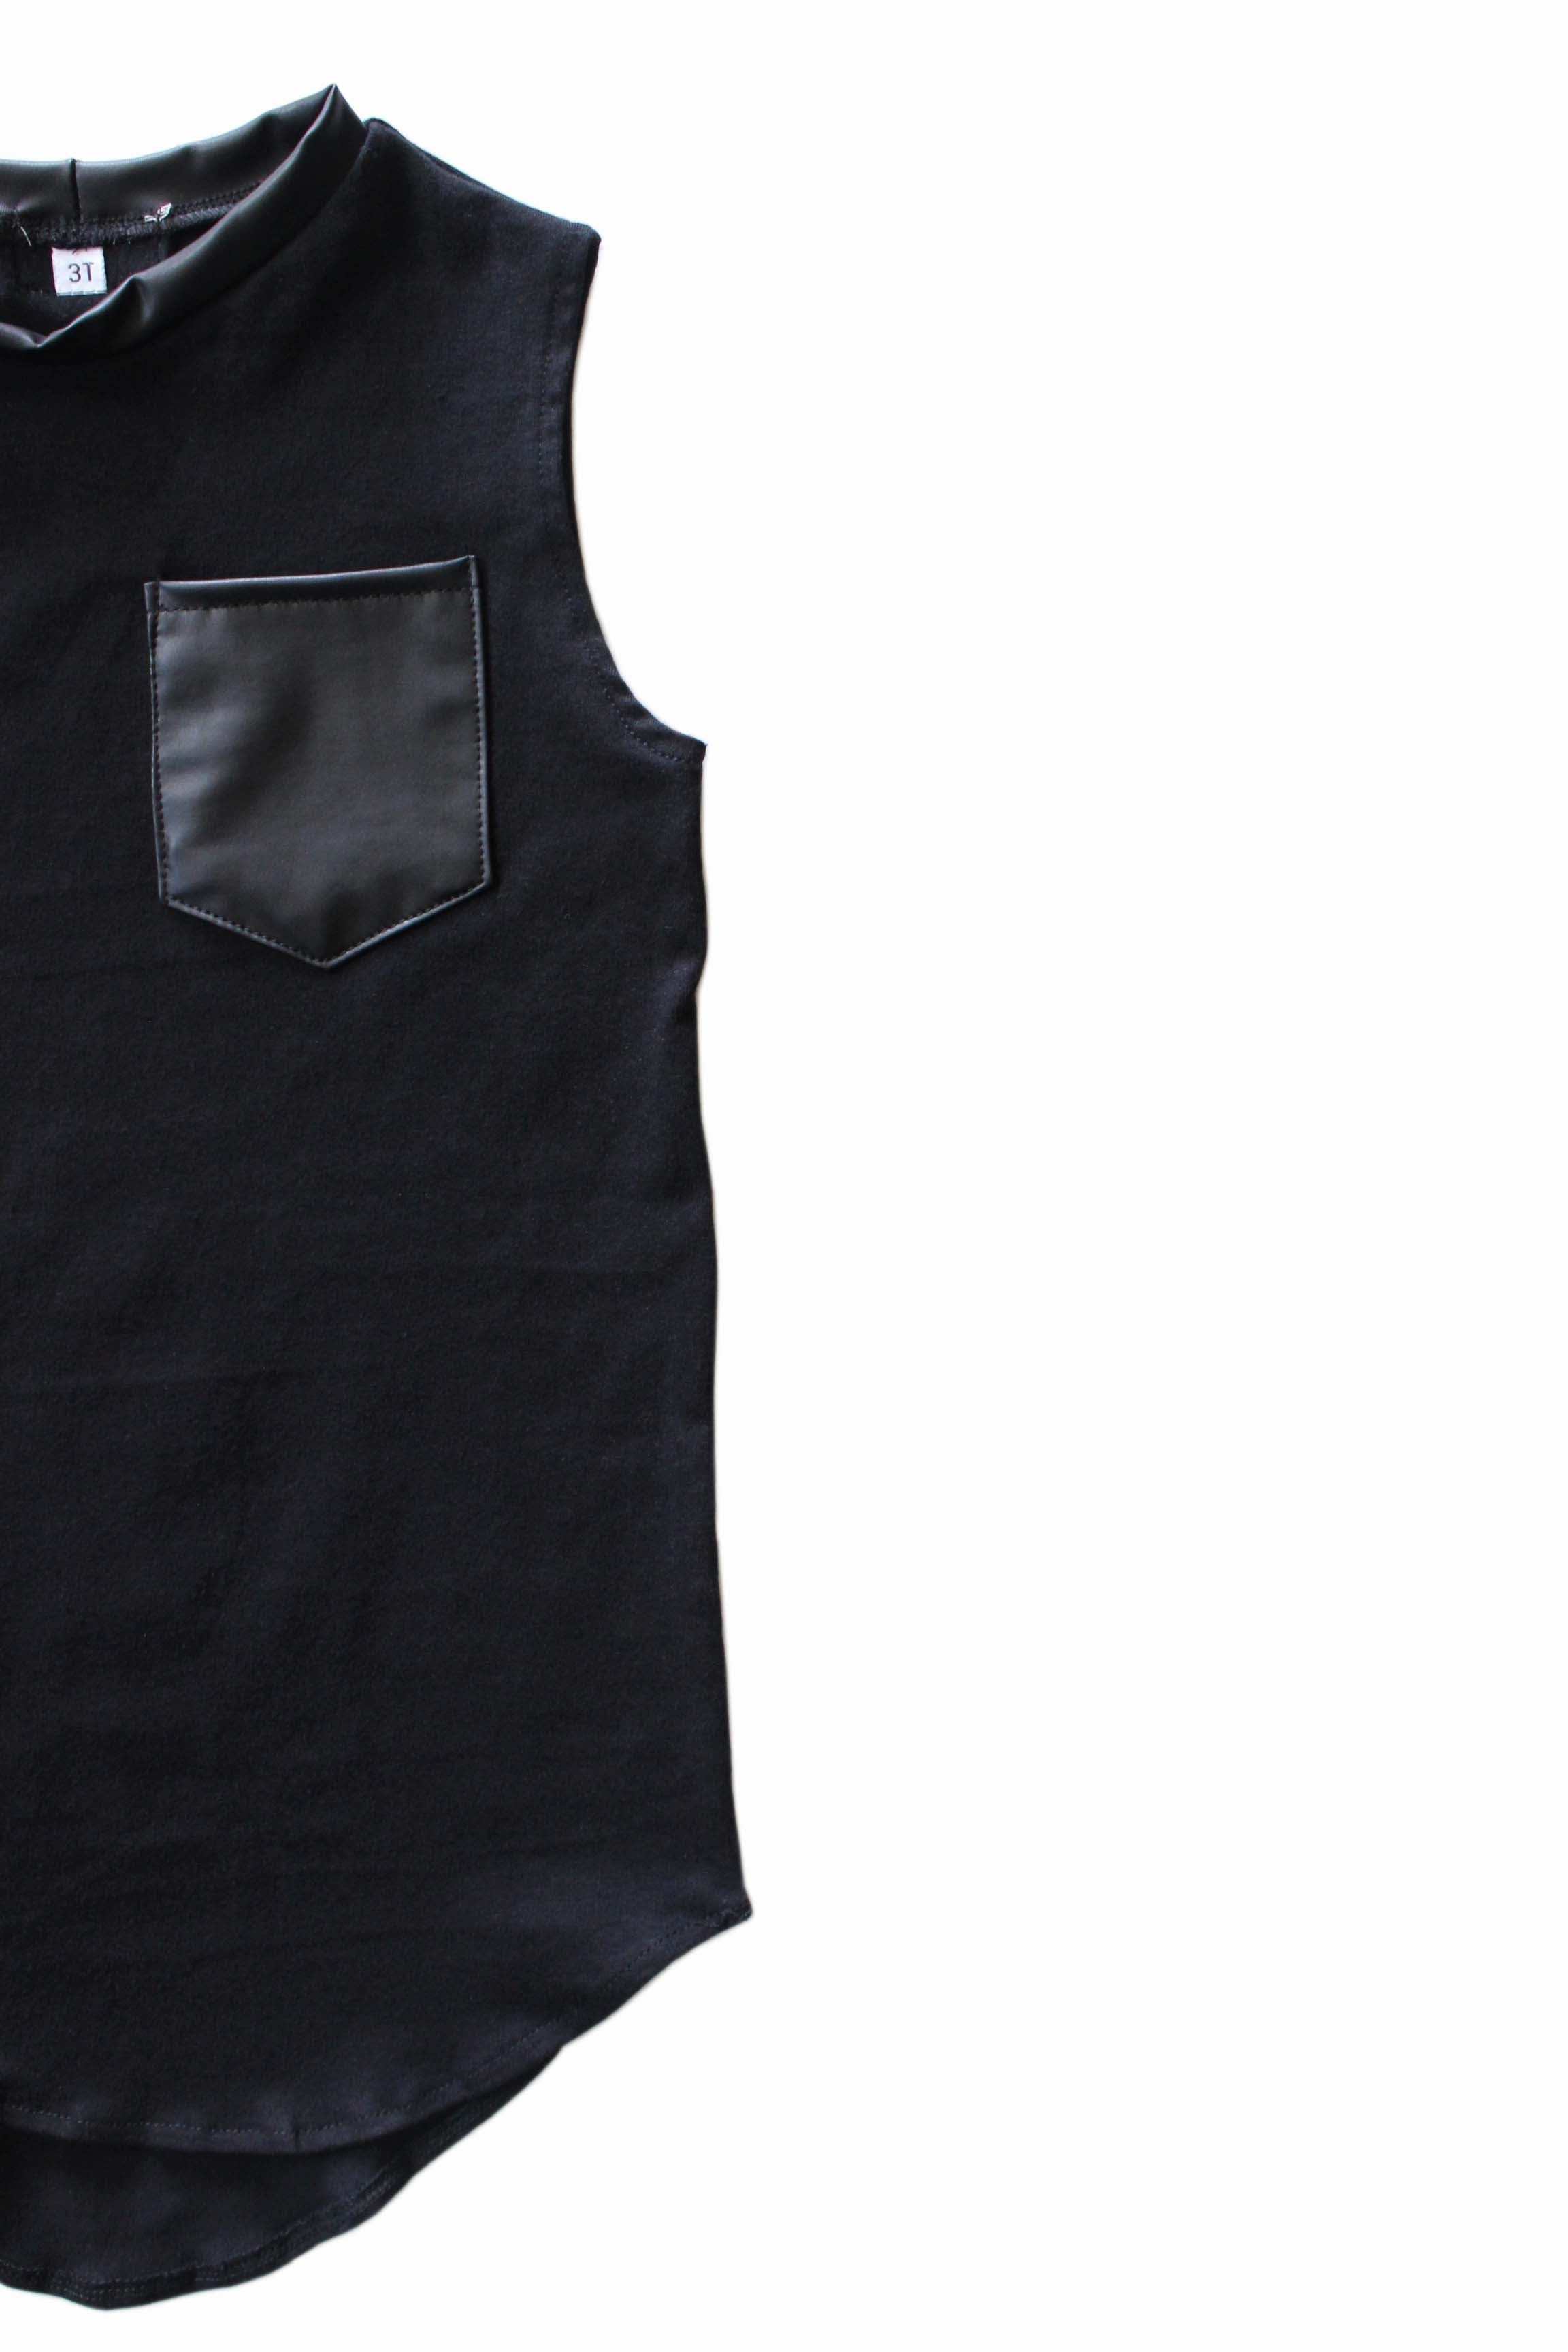 Tail Pocket Tank | Black & Faux Leather